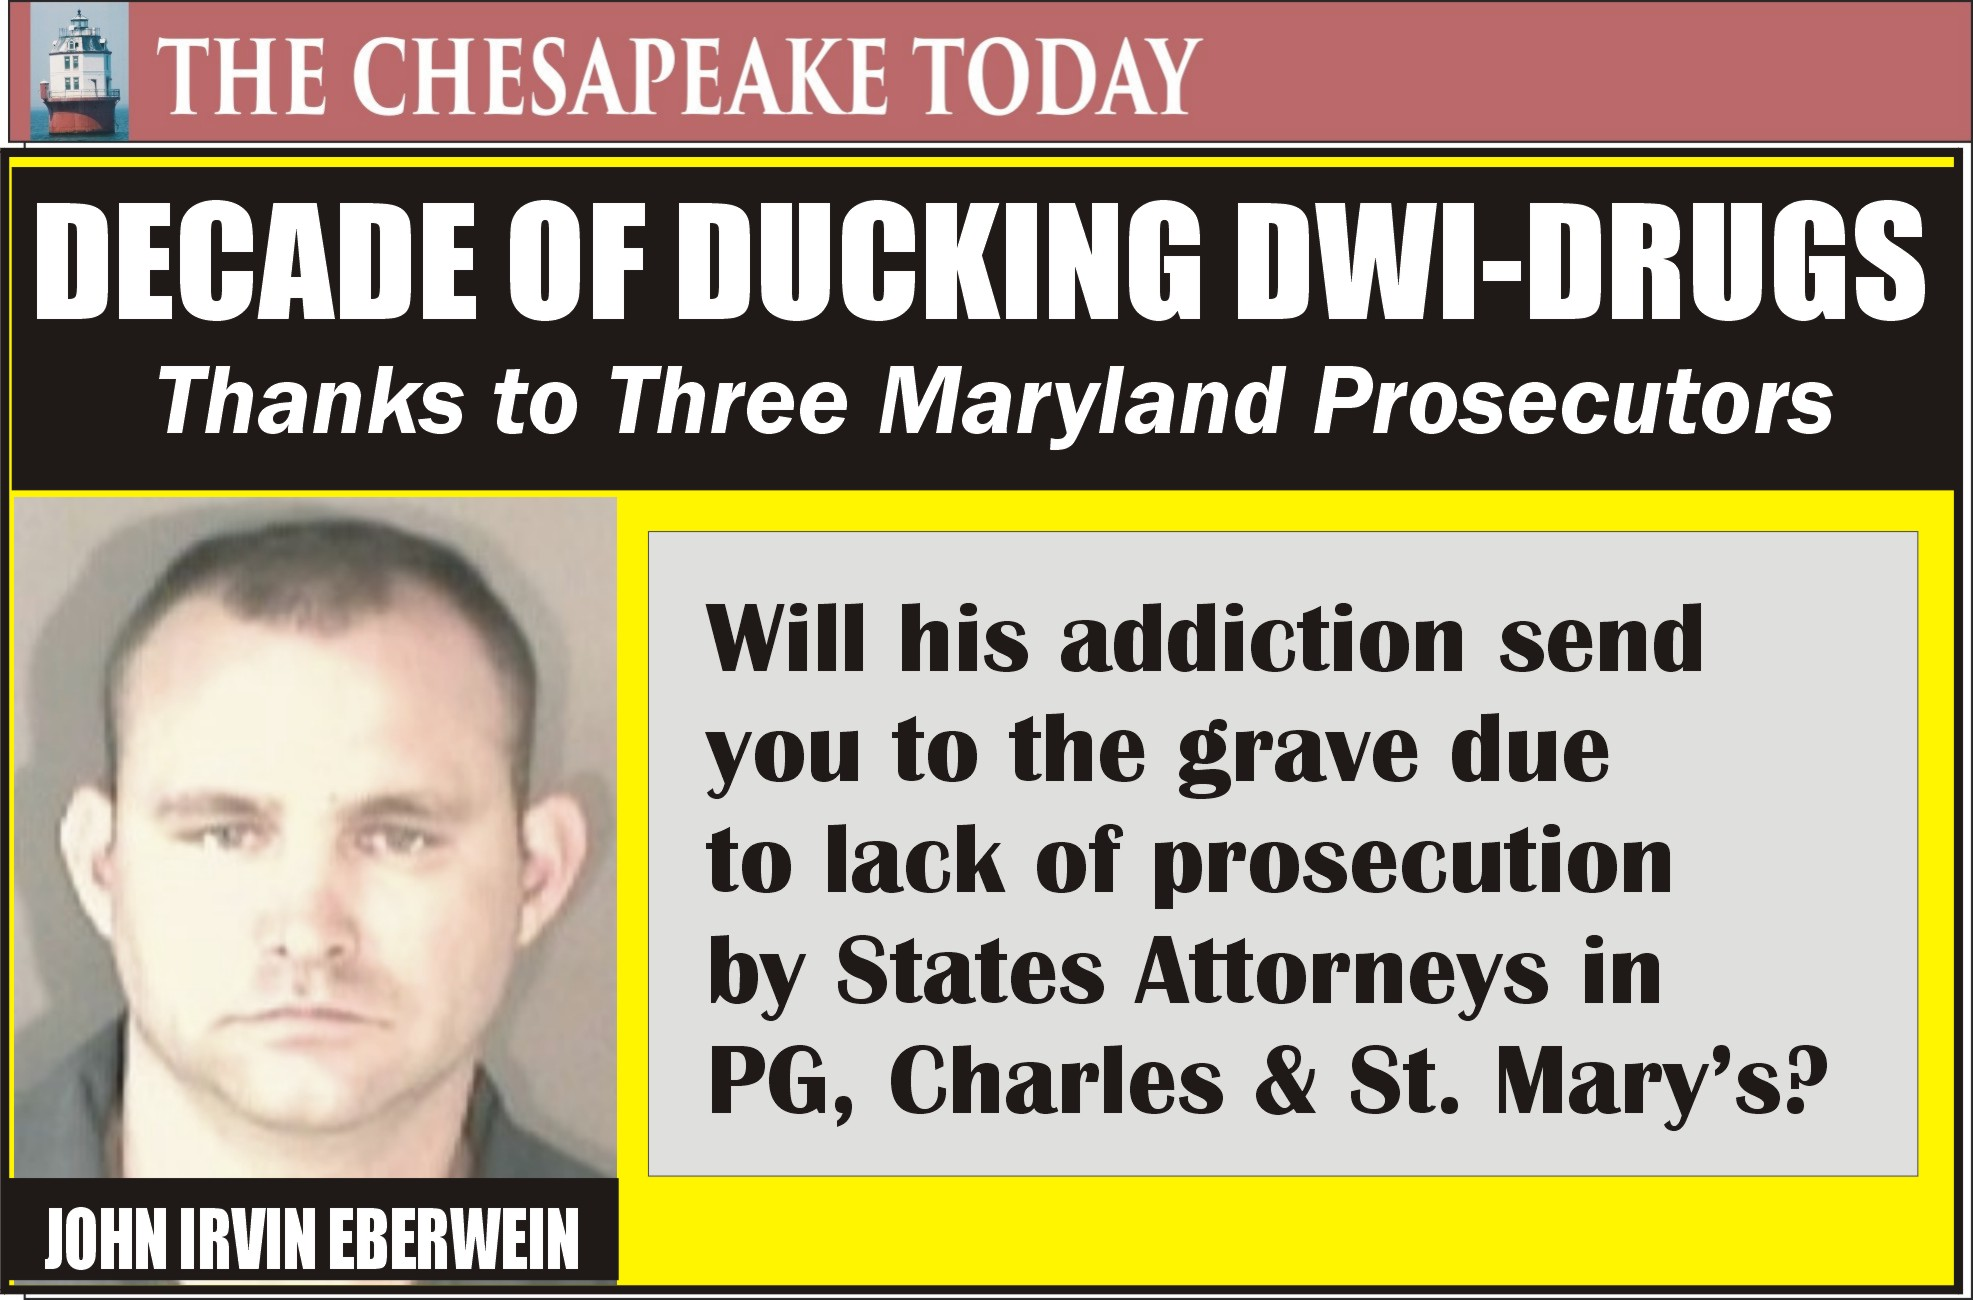 COURT NEWS: THE LONG SAGA OF DWI-DRUGS ARRESTS OF REPEAT OFFENDER JOHN IRWIN EBERWEIN WHO IS NEVER HELD ACCOUNTABLE